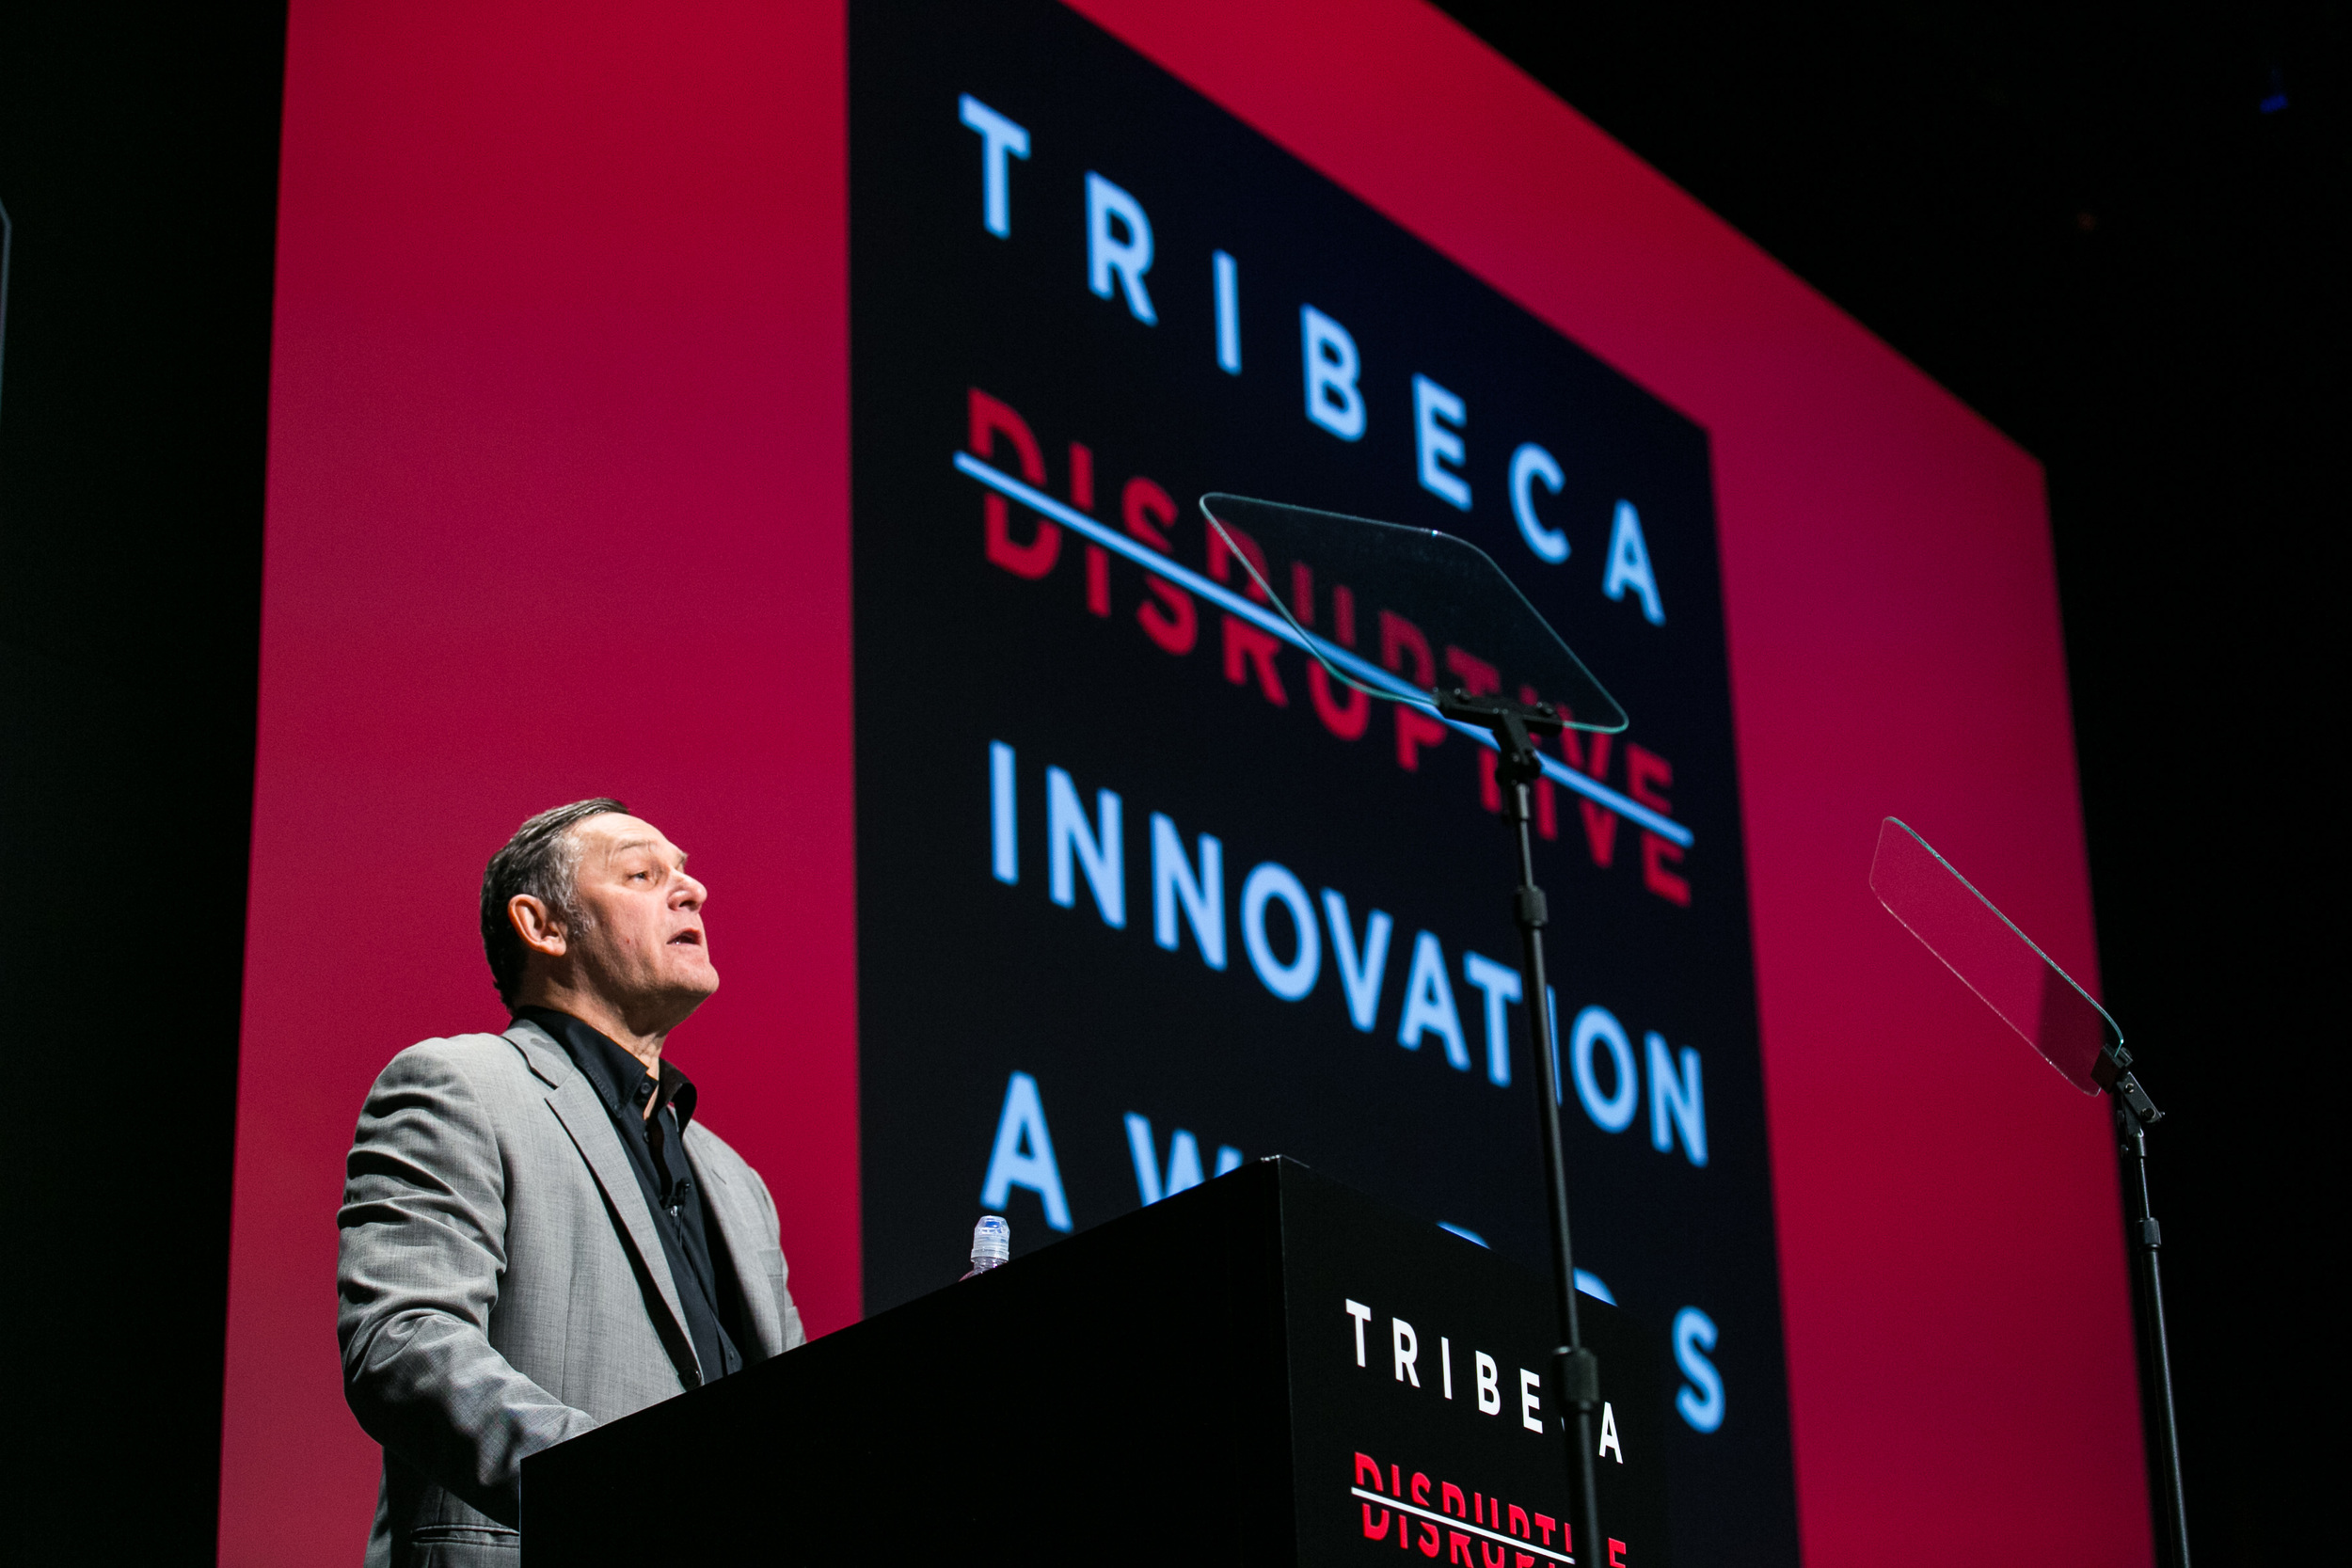 20150424-Tribeca Disruptive Innovation Awards-0334.jpg